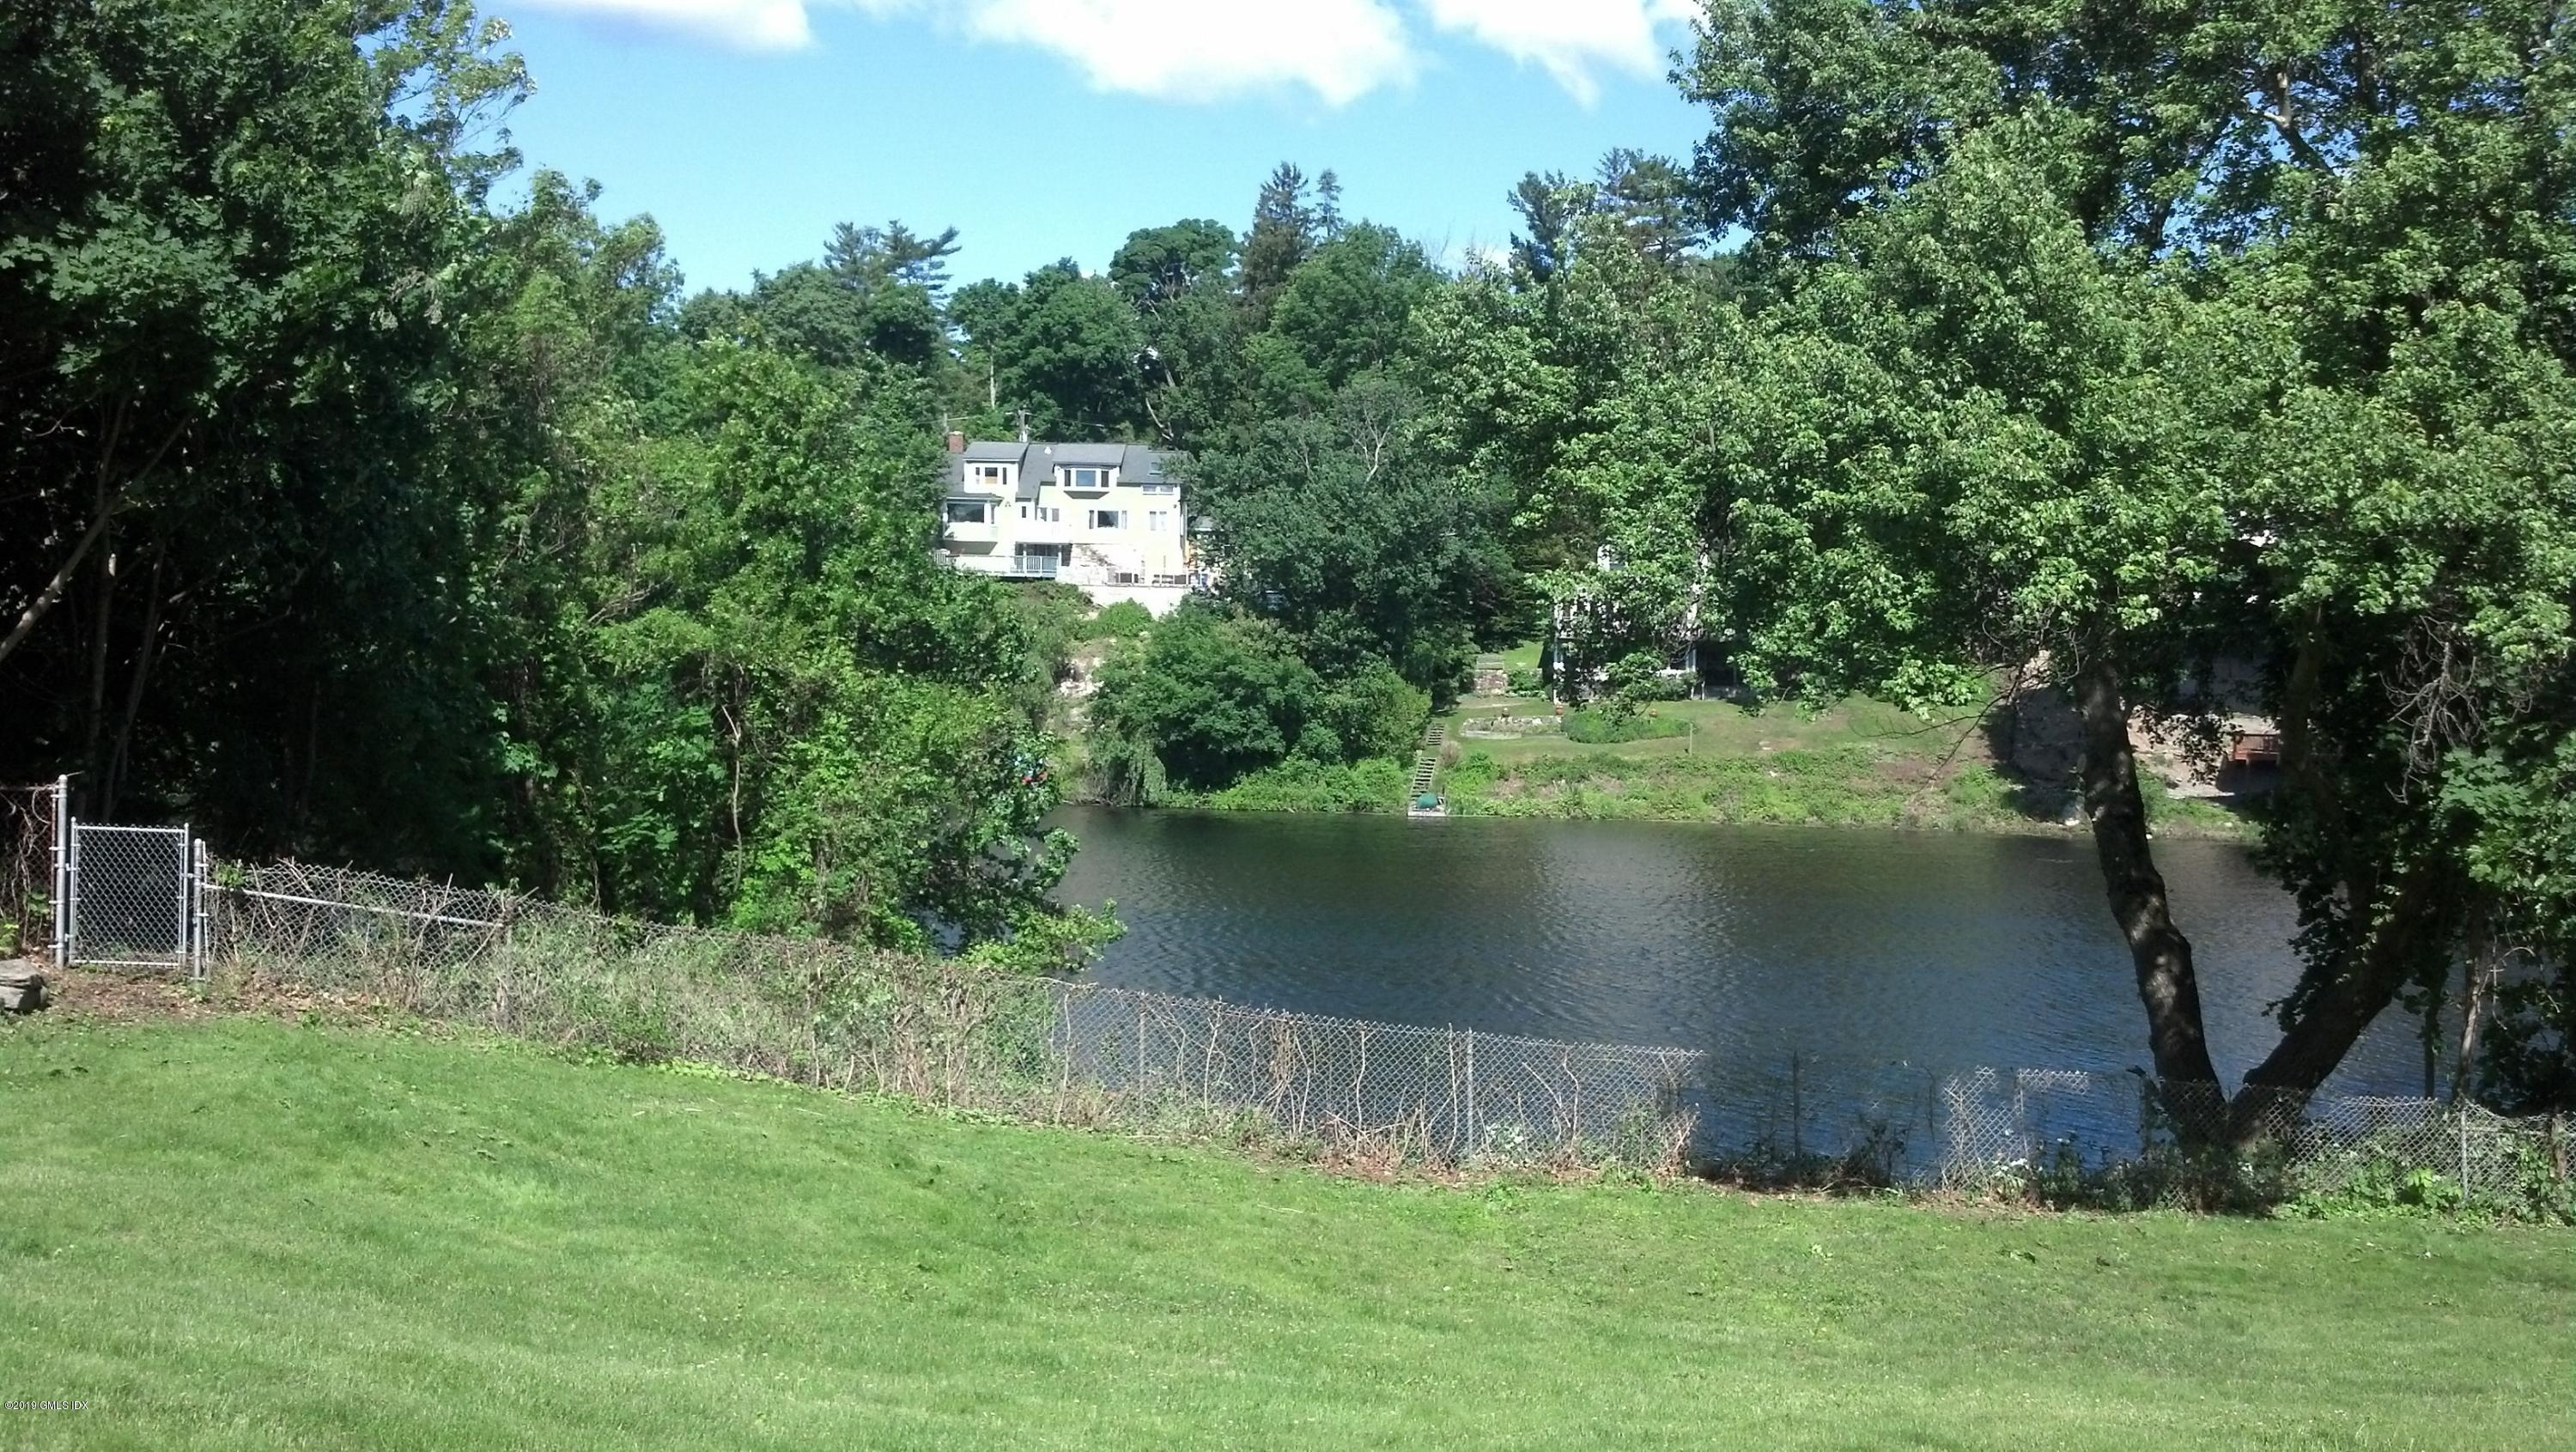 190 Sheephill Road,Riverside,Connecticut 06878,4 Bedrooms Bedrooms,2 BathroomsBathrooms,Sheephill,105407